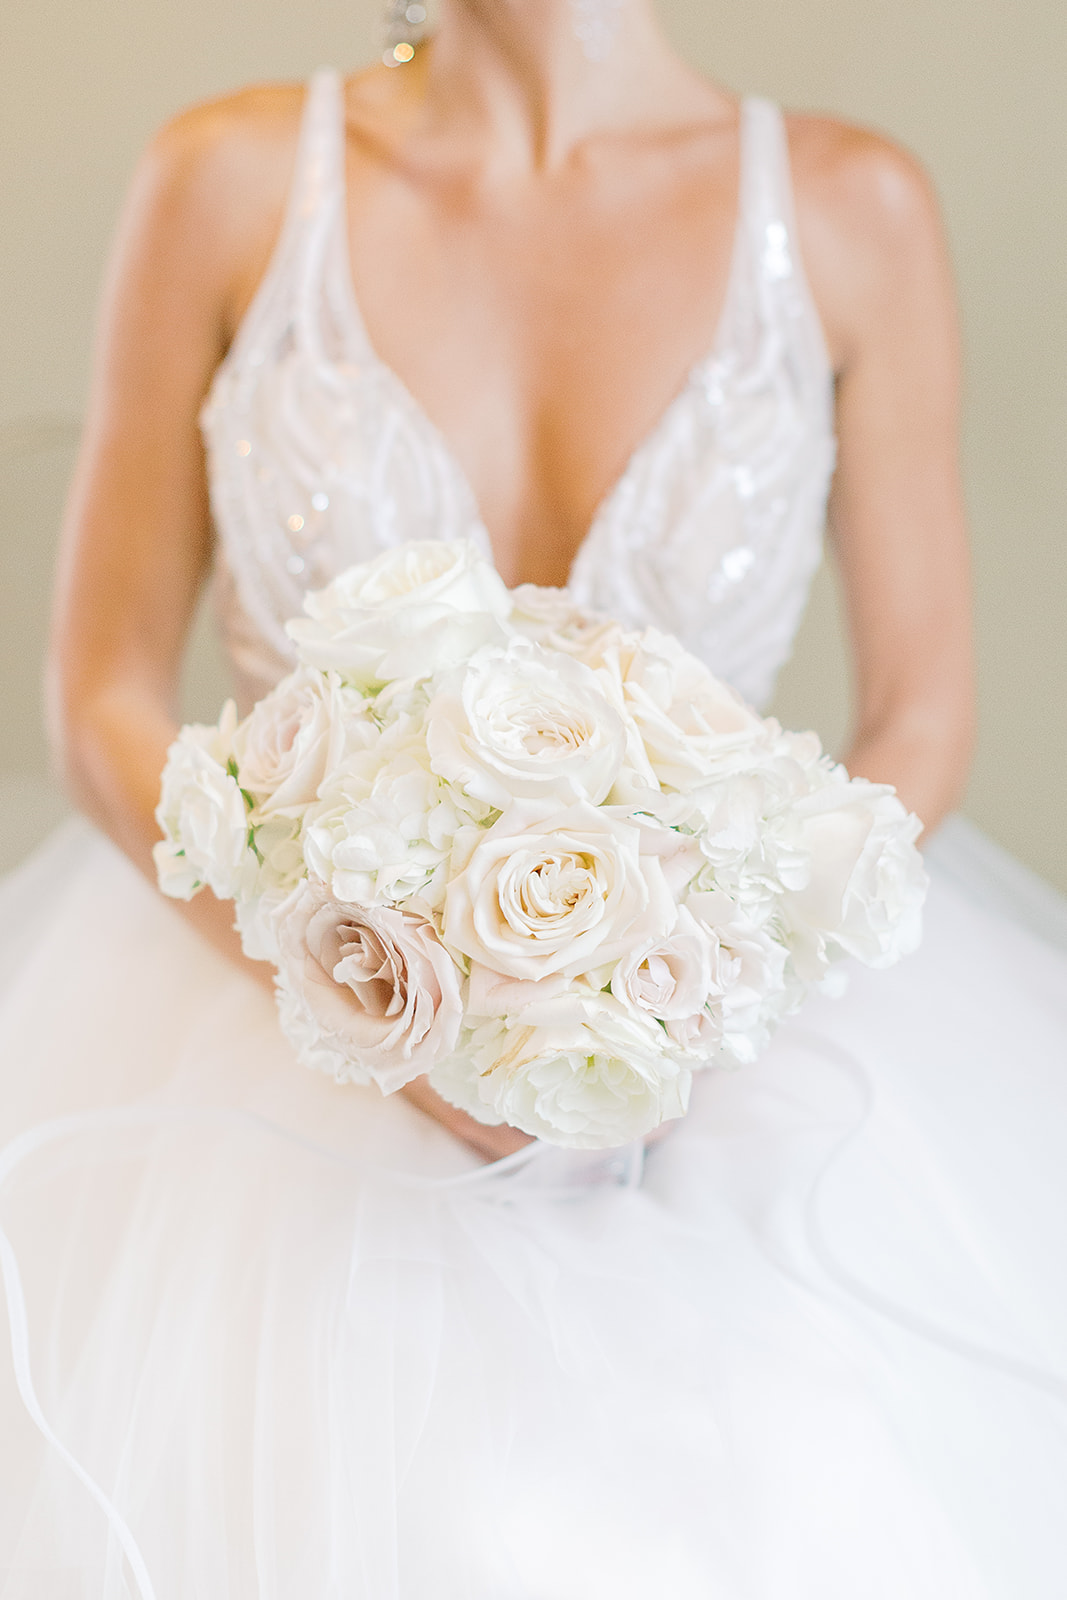 All white rose bridal bouquet for a formal ballroom summer white orchid wedding by Flora Nova Design Seattle